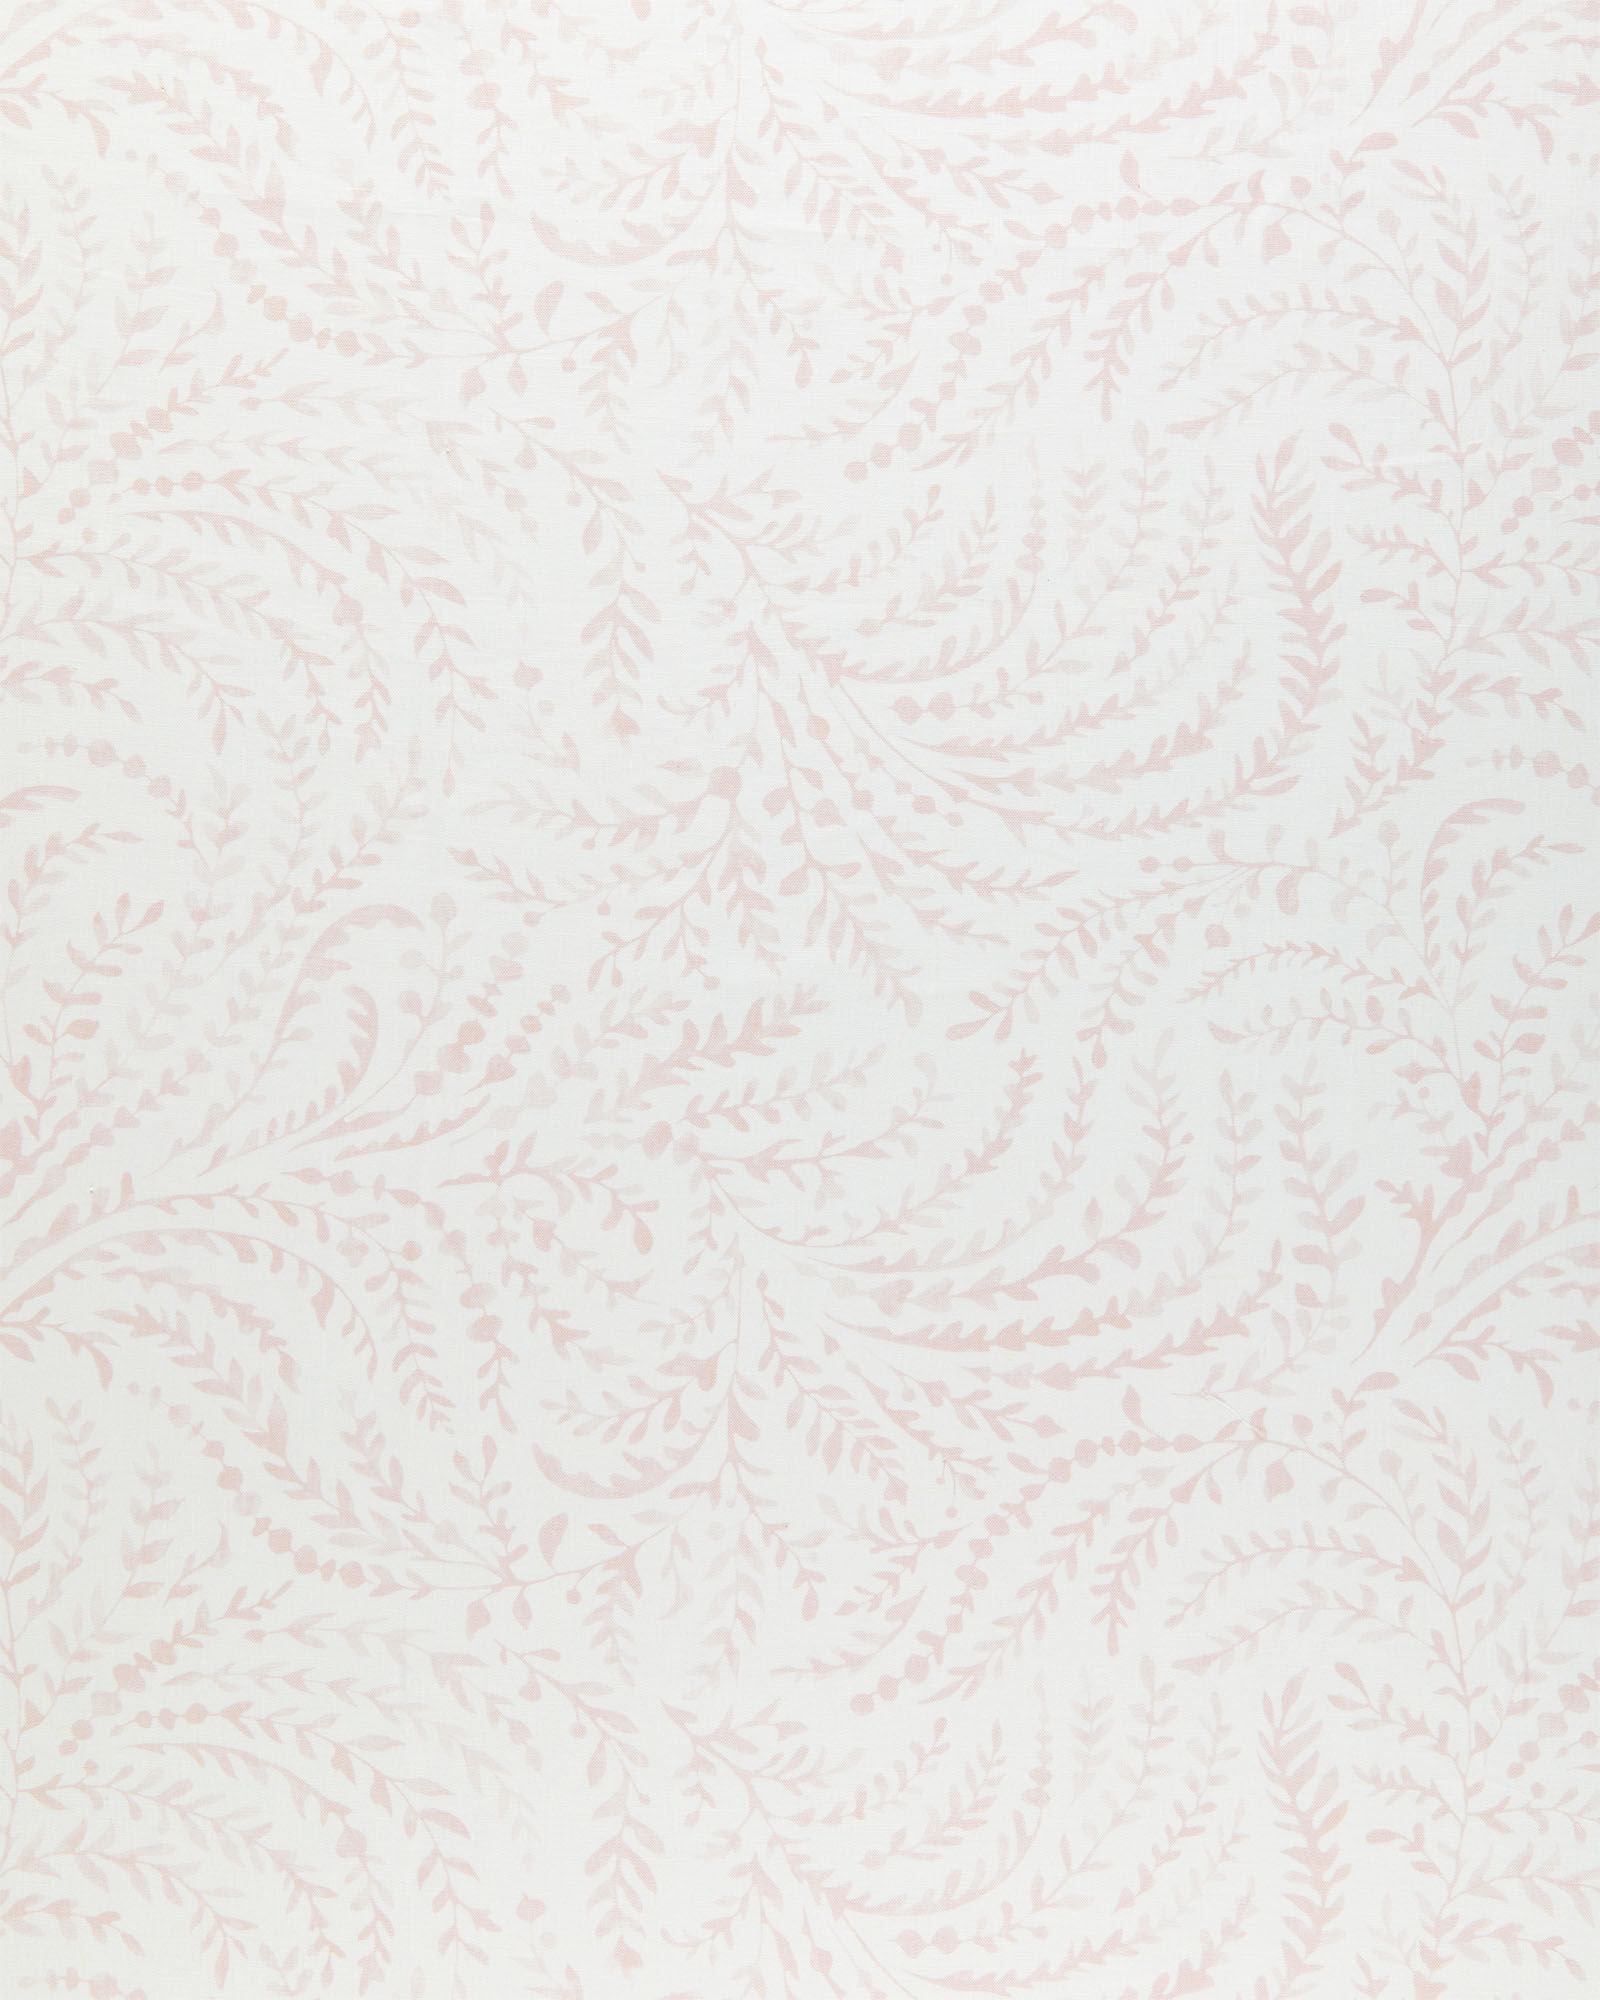 Fabric by the Yard - Priano Linen, Pink Sand